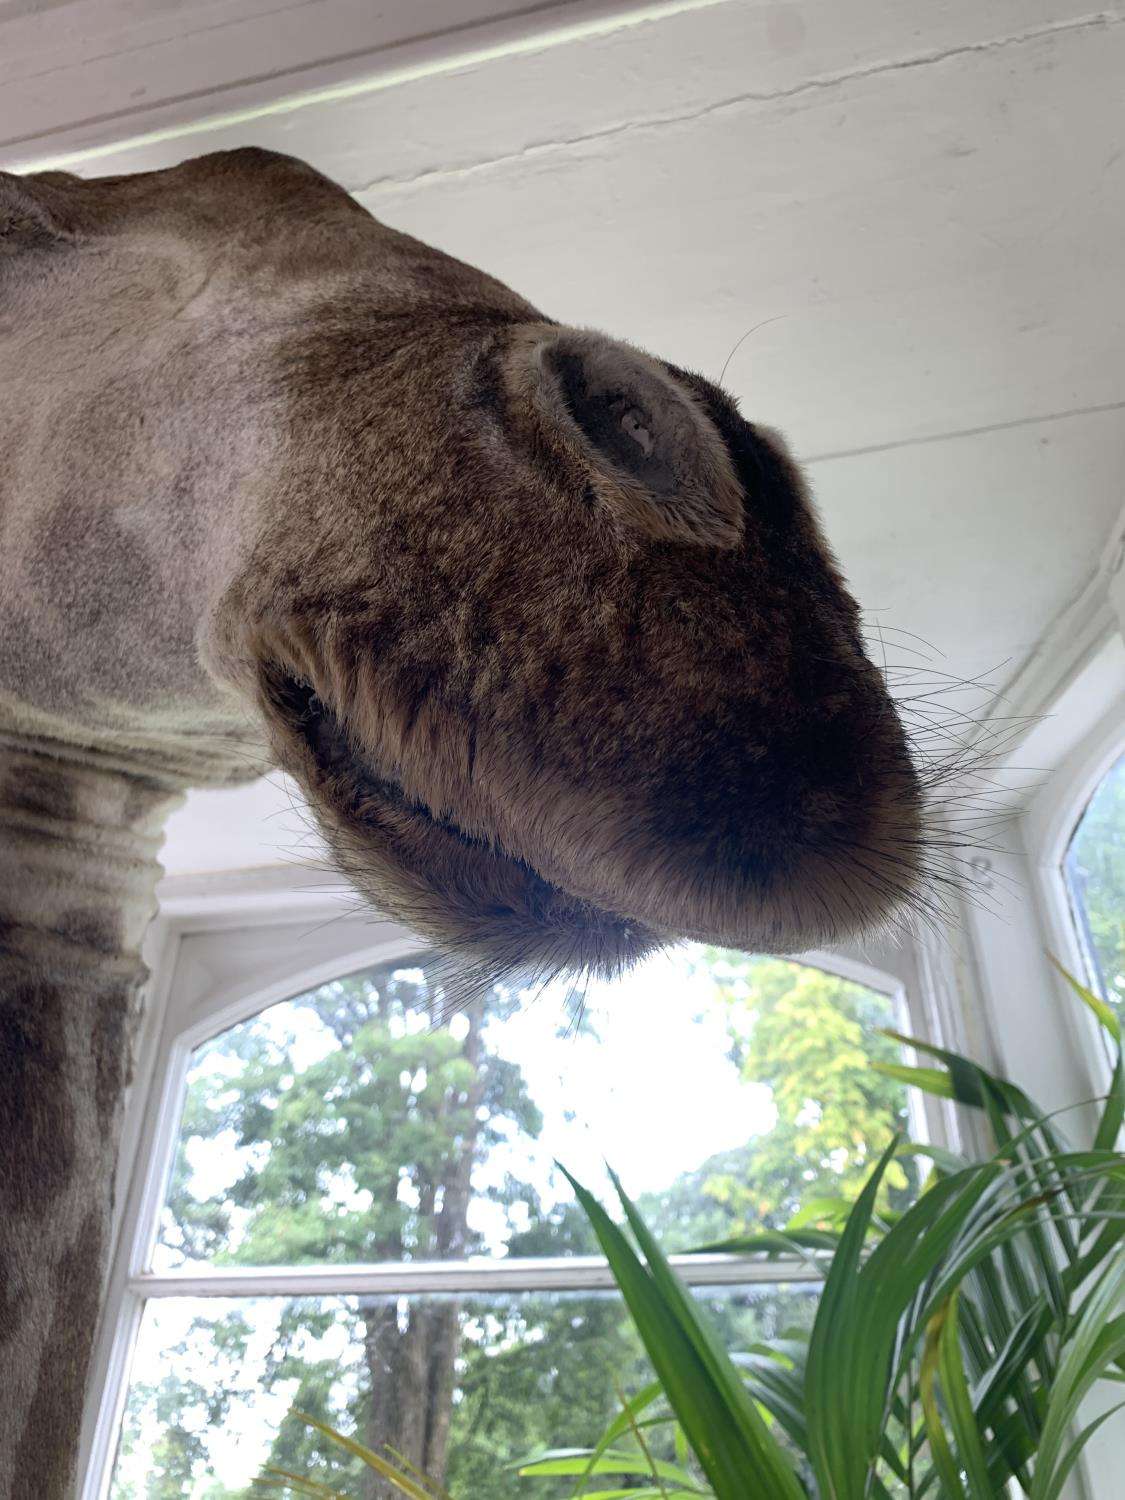 Shoulder and head taxidermy giraffe. - Image 5 of 5